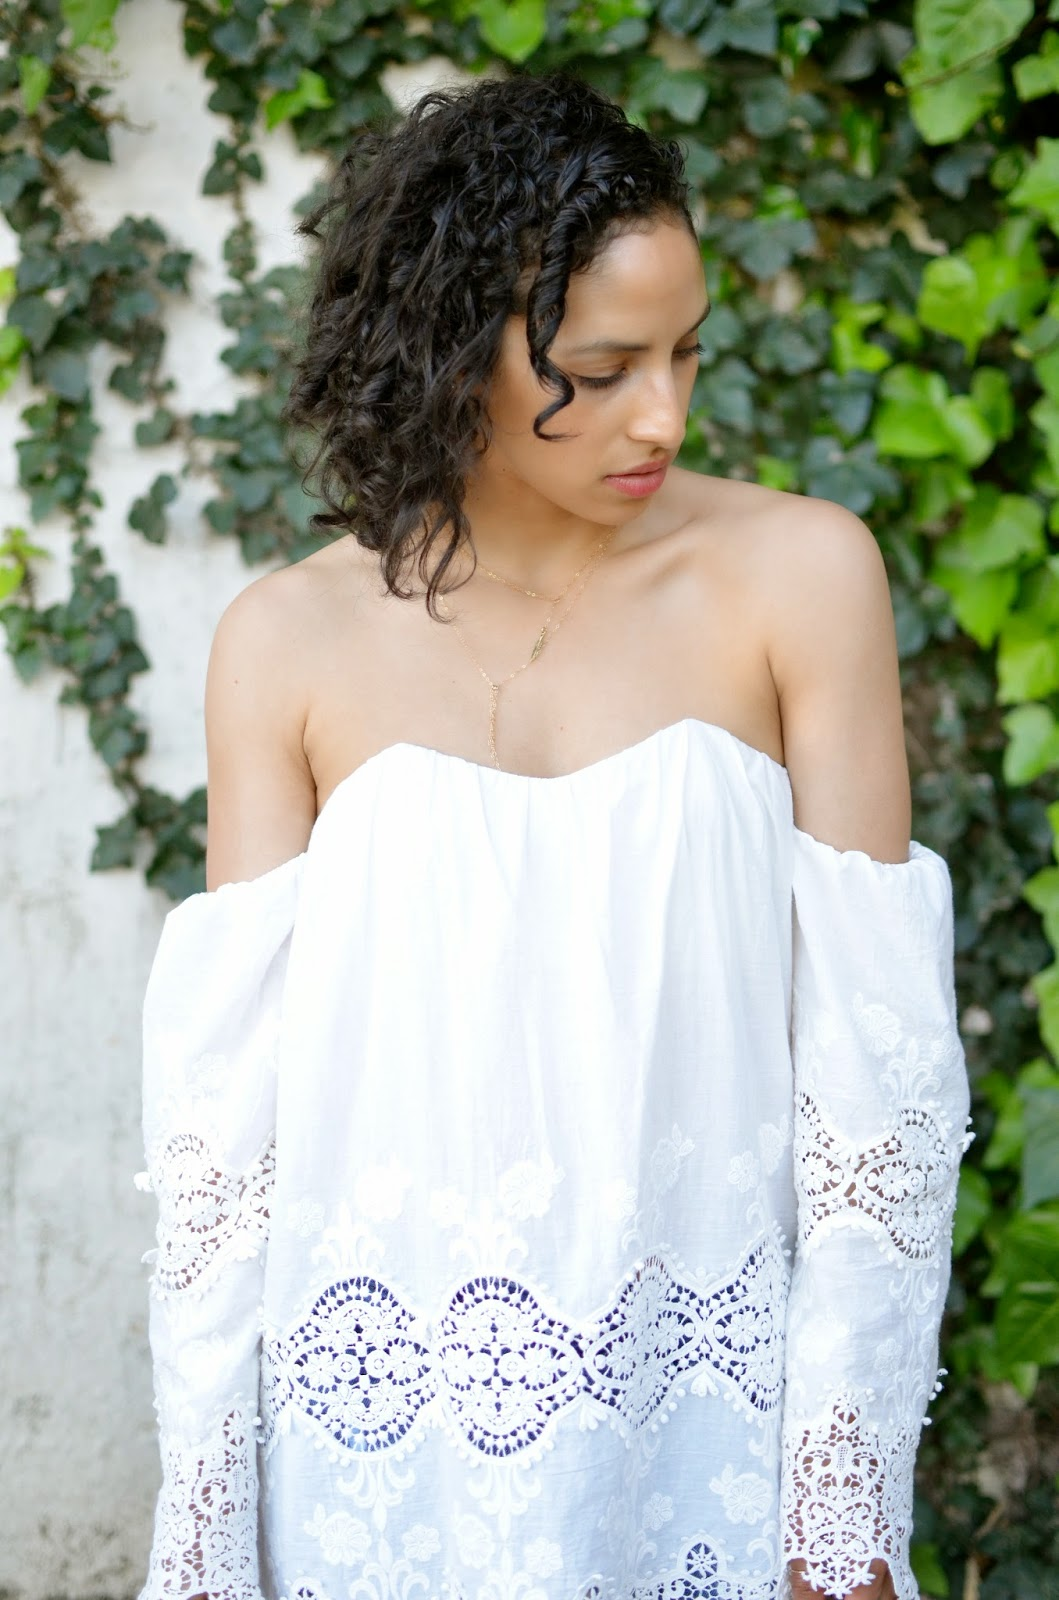 stone cold fox marrakech dress, stone cold fox, revolve clothing, short curly hair,SF street style